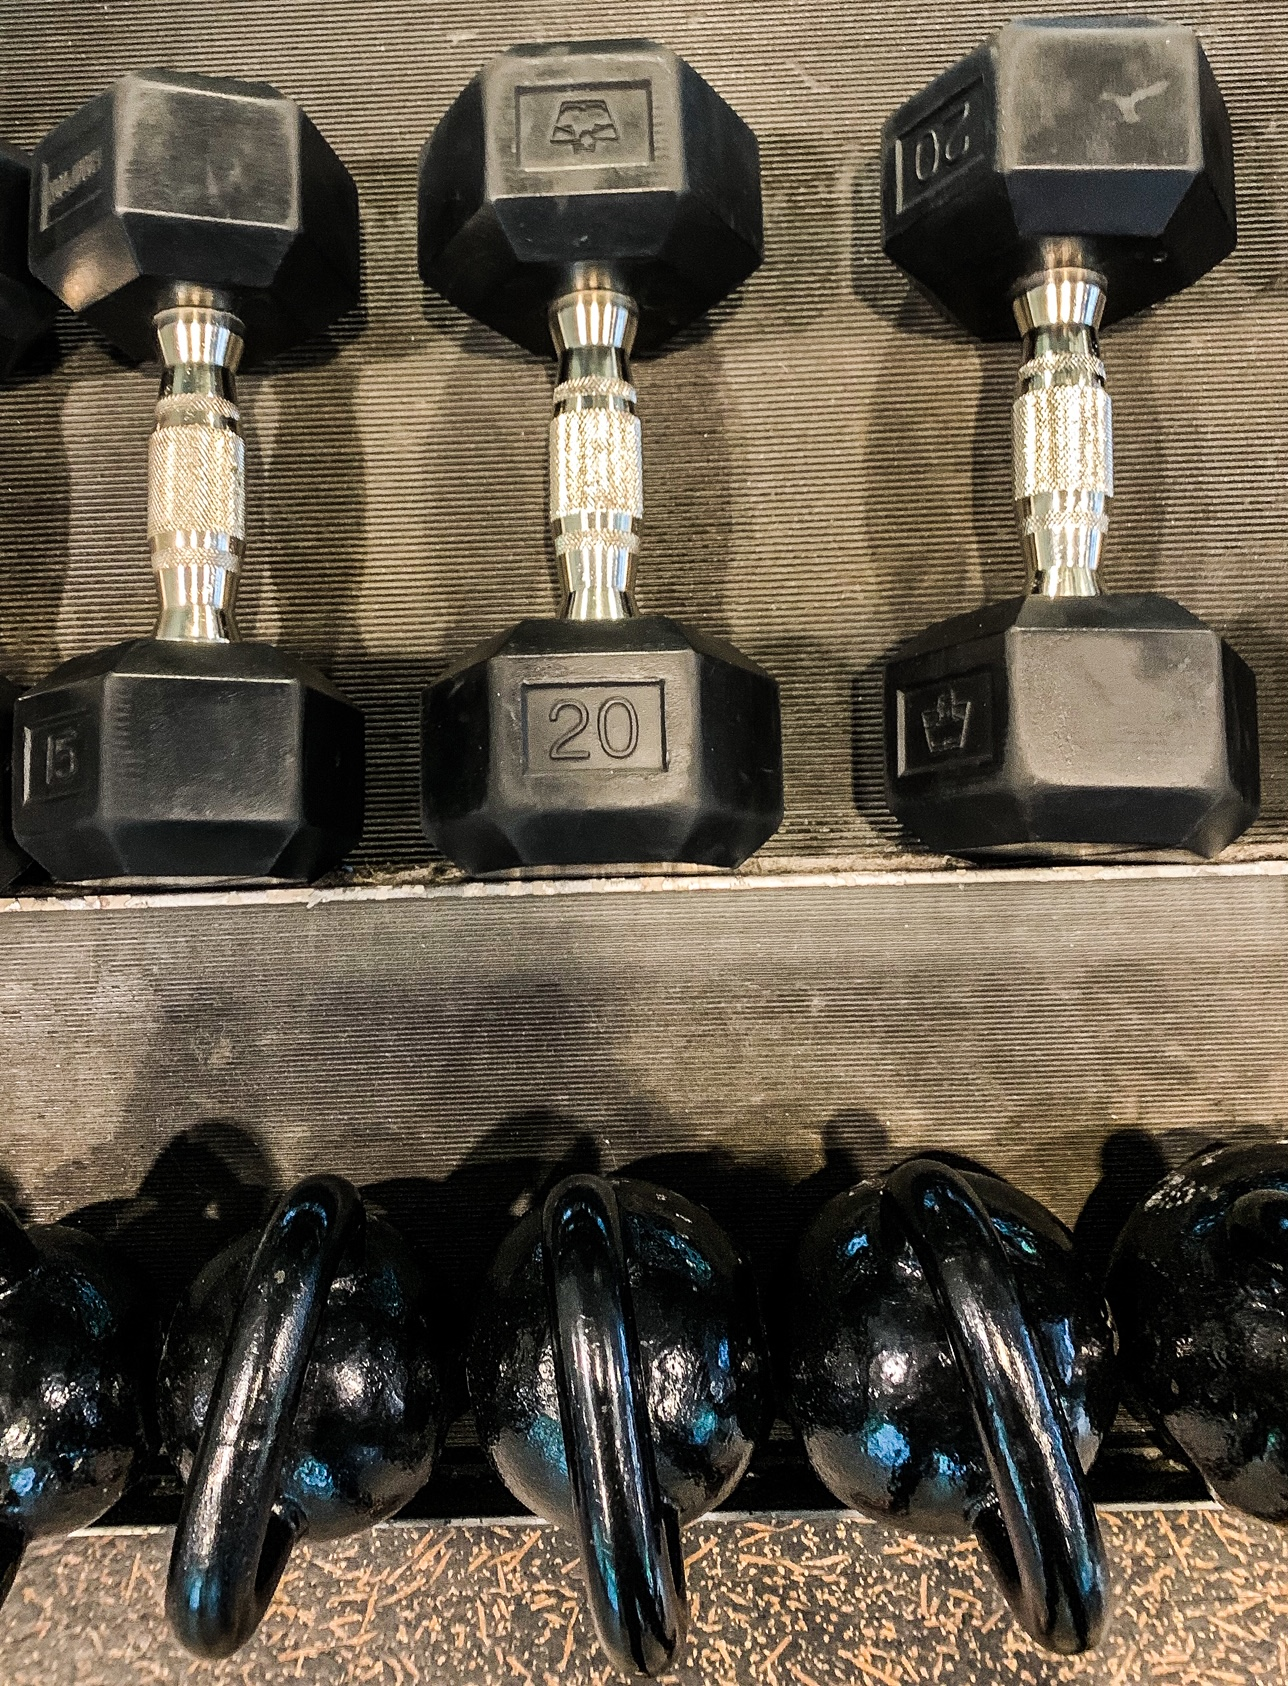 Various dumbbell weights